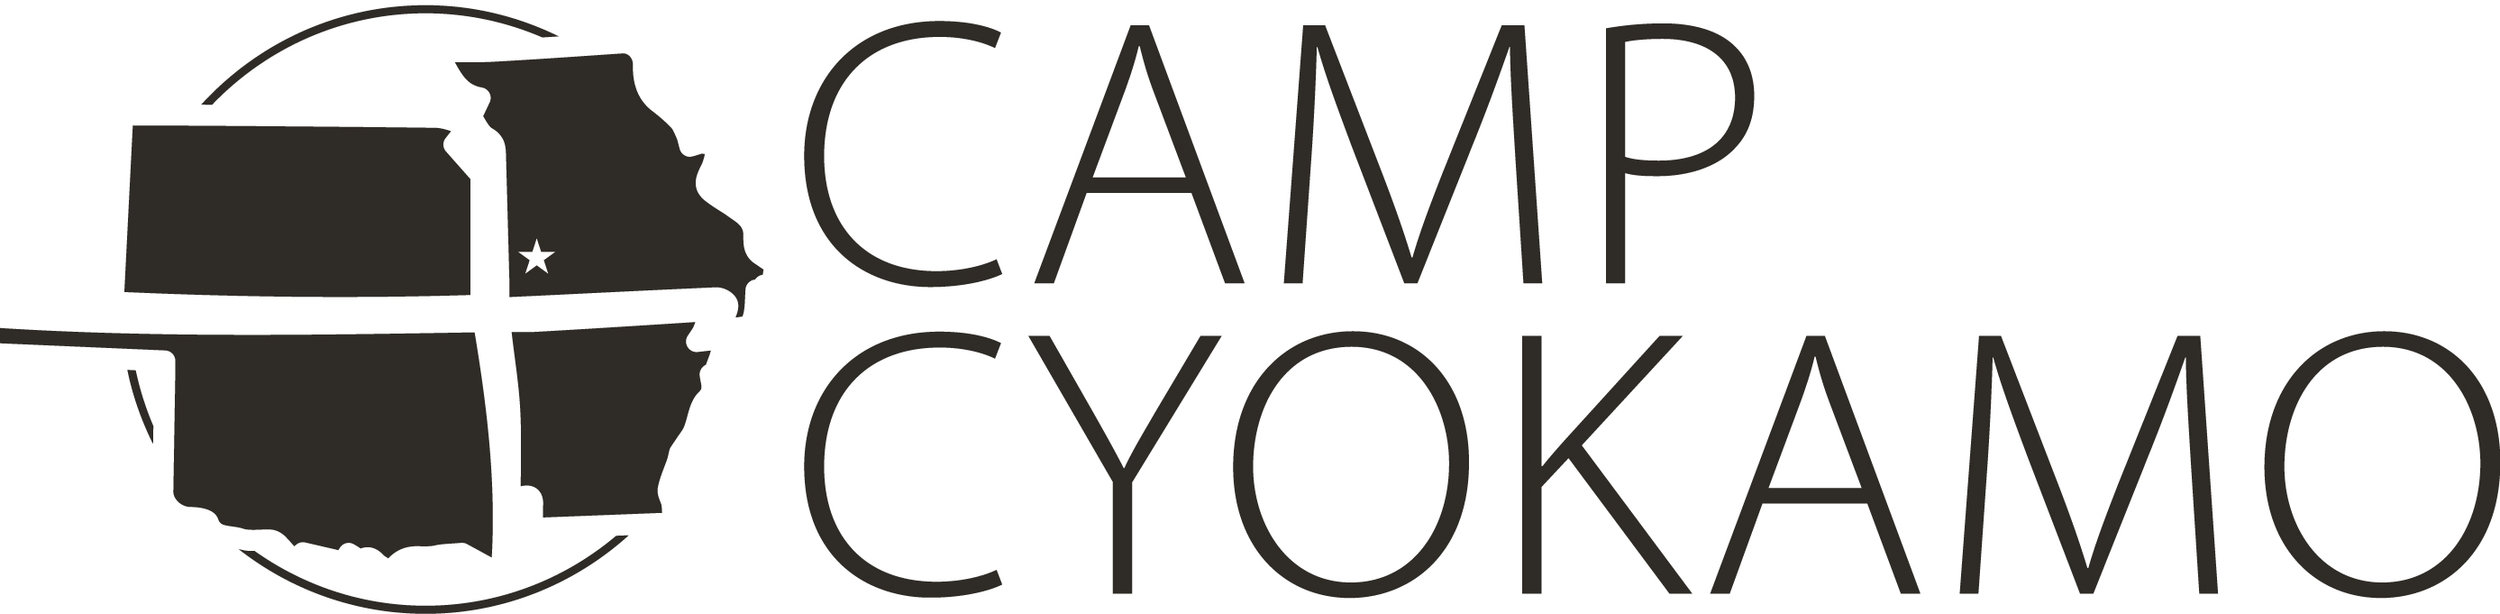 Camp Cyokamo Stacked (black) w star.jpg